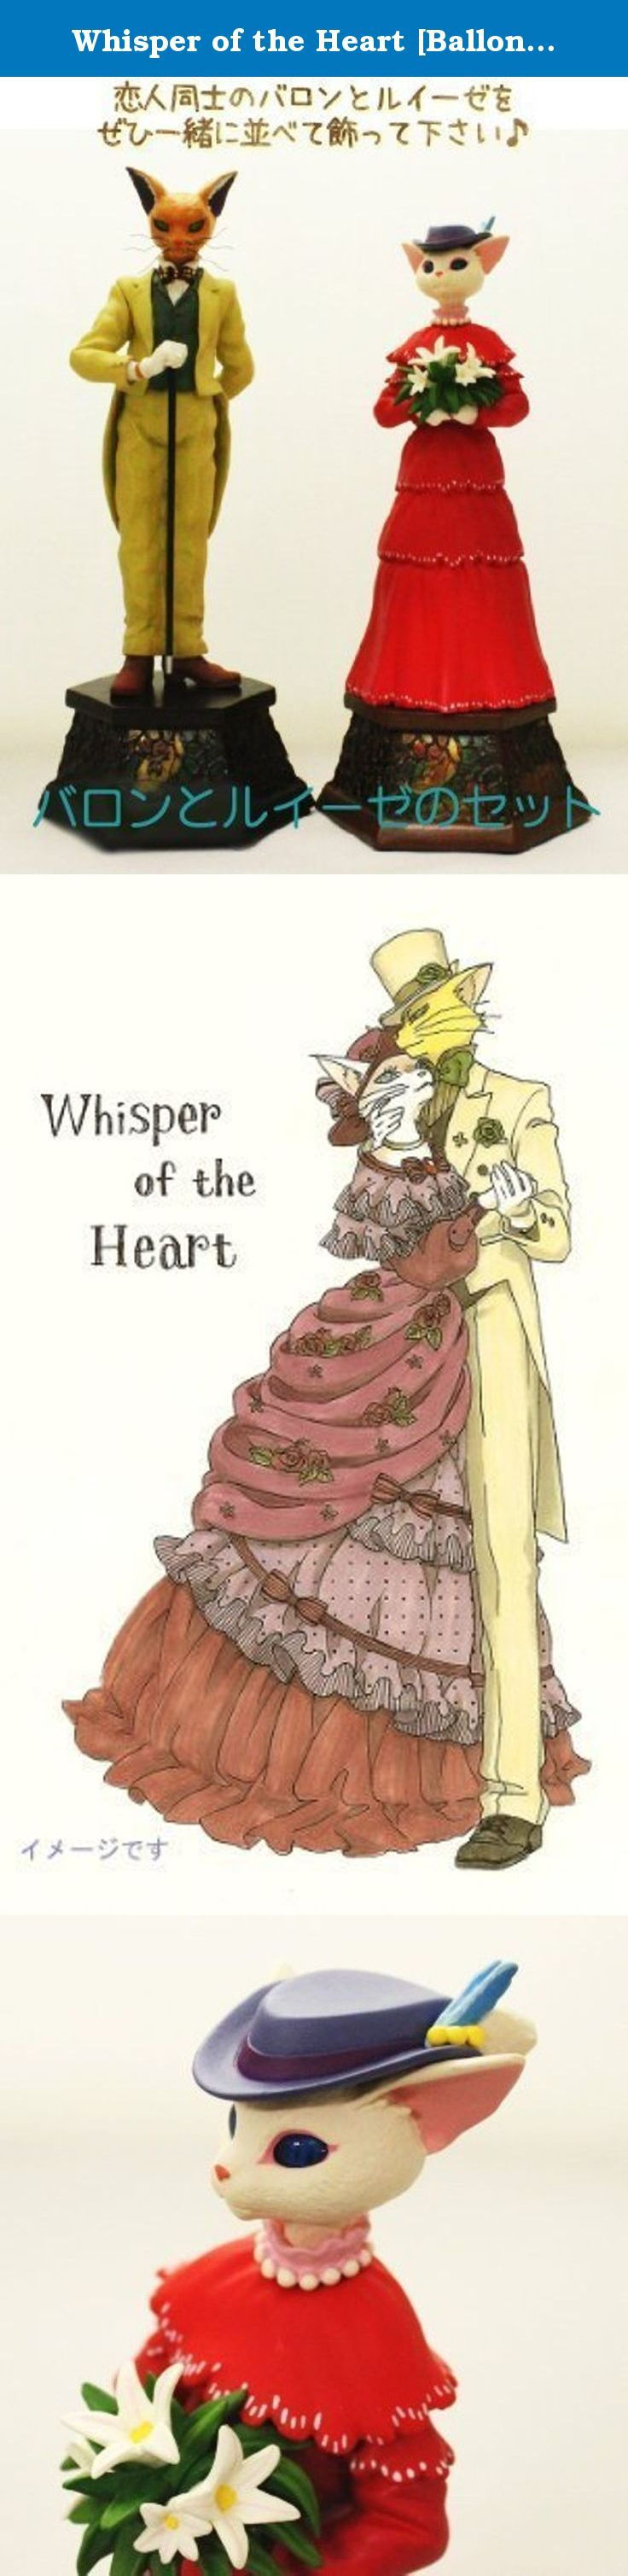 Whisper of the Heart [Ballon d'Or & Luise lovely music box set] Studio Ghibli excellent work anime ô stained glass is beautiful music box ô side-by-side please ô Ghibli decorate together of is full!. It's shipped off from Japan.